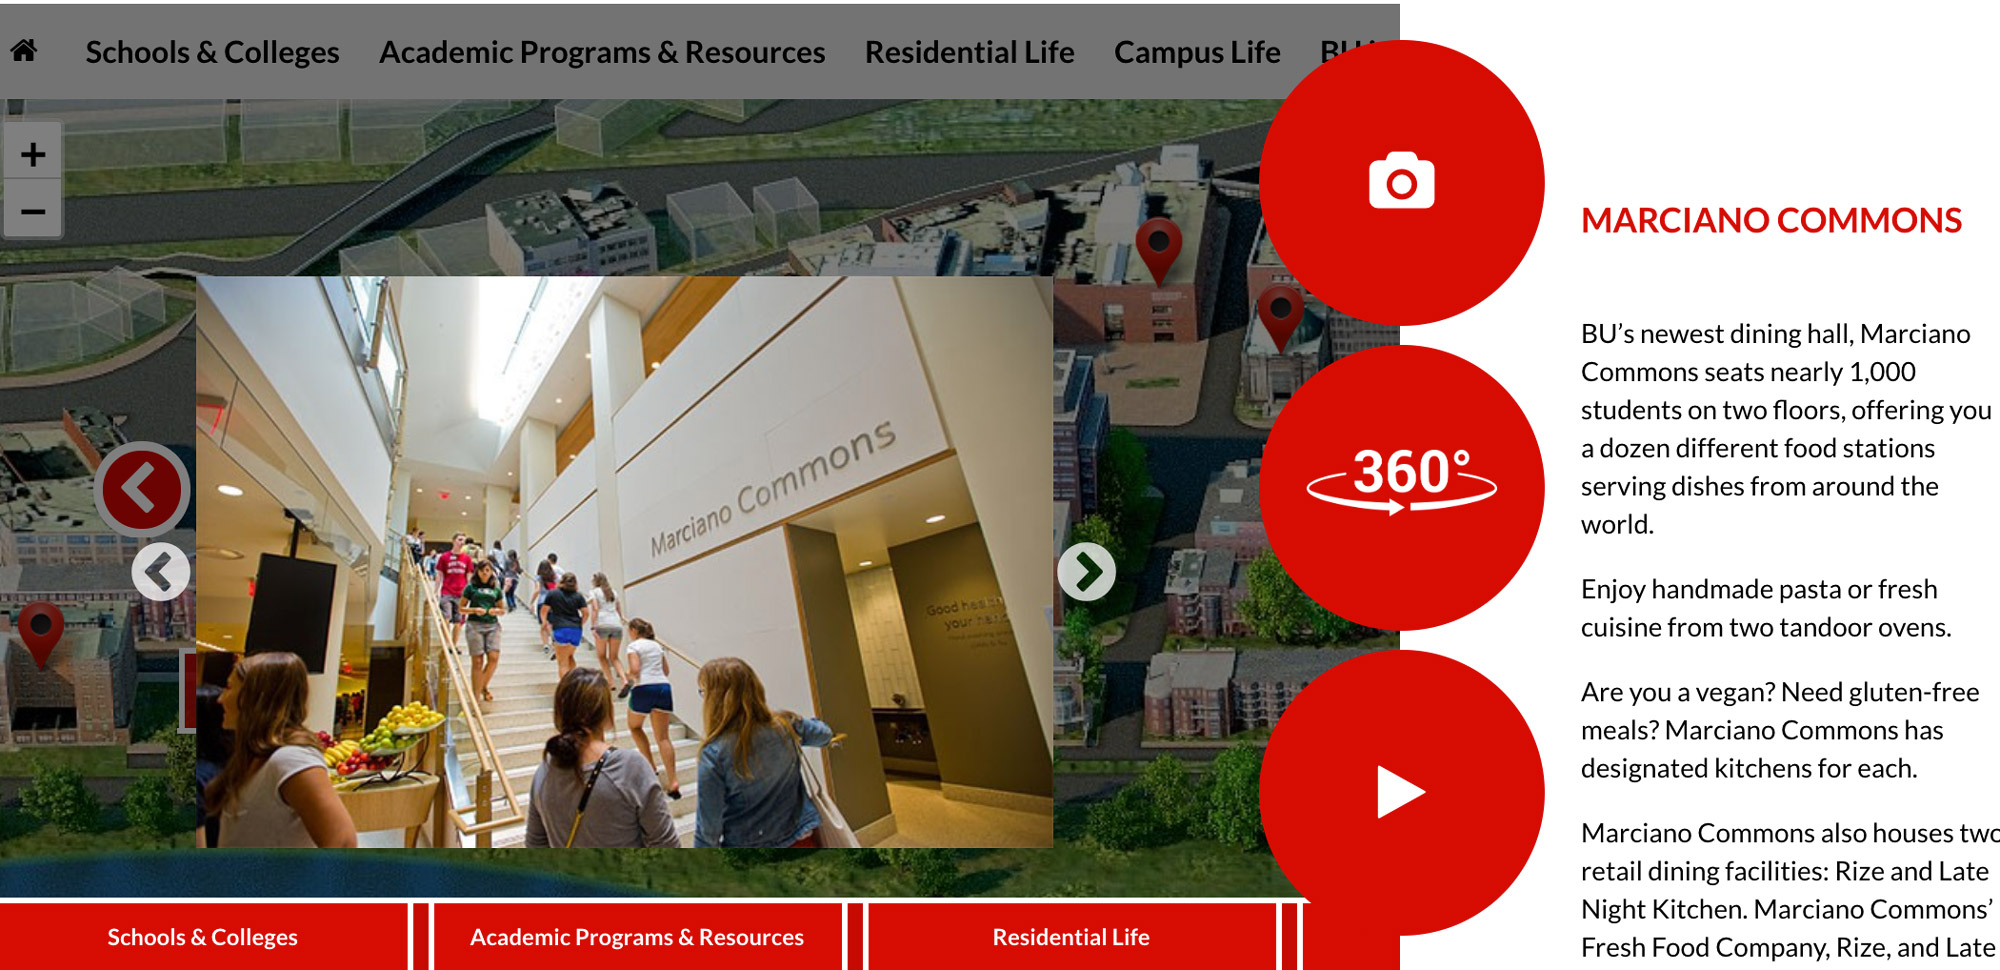 A screenshot of a virtual tour of Marciano Commons